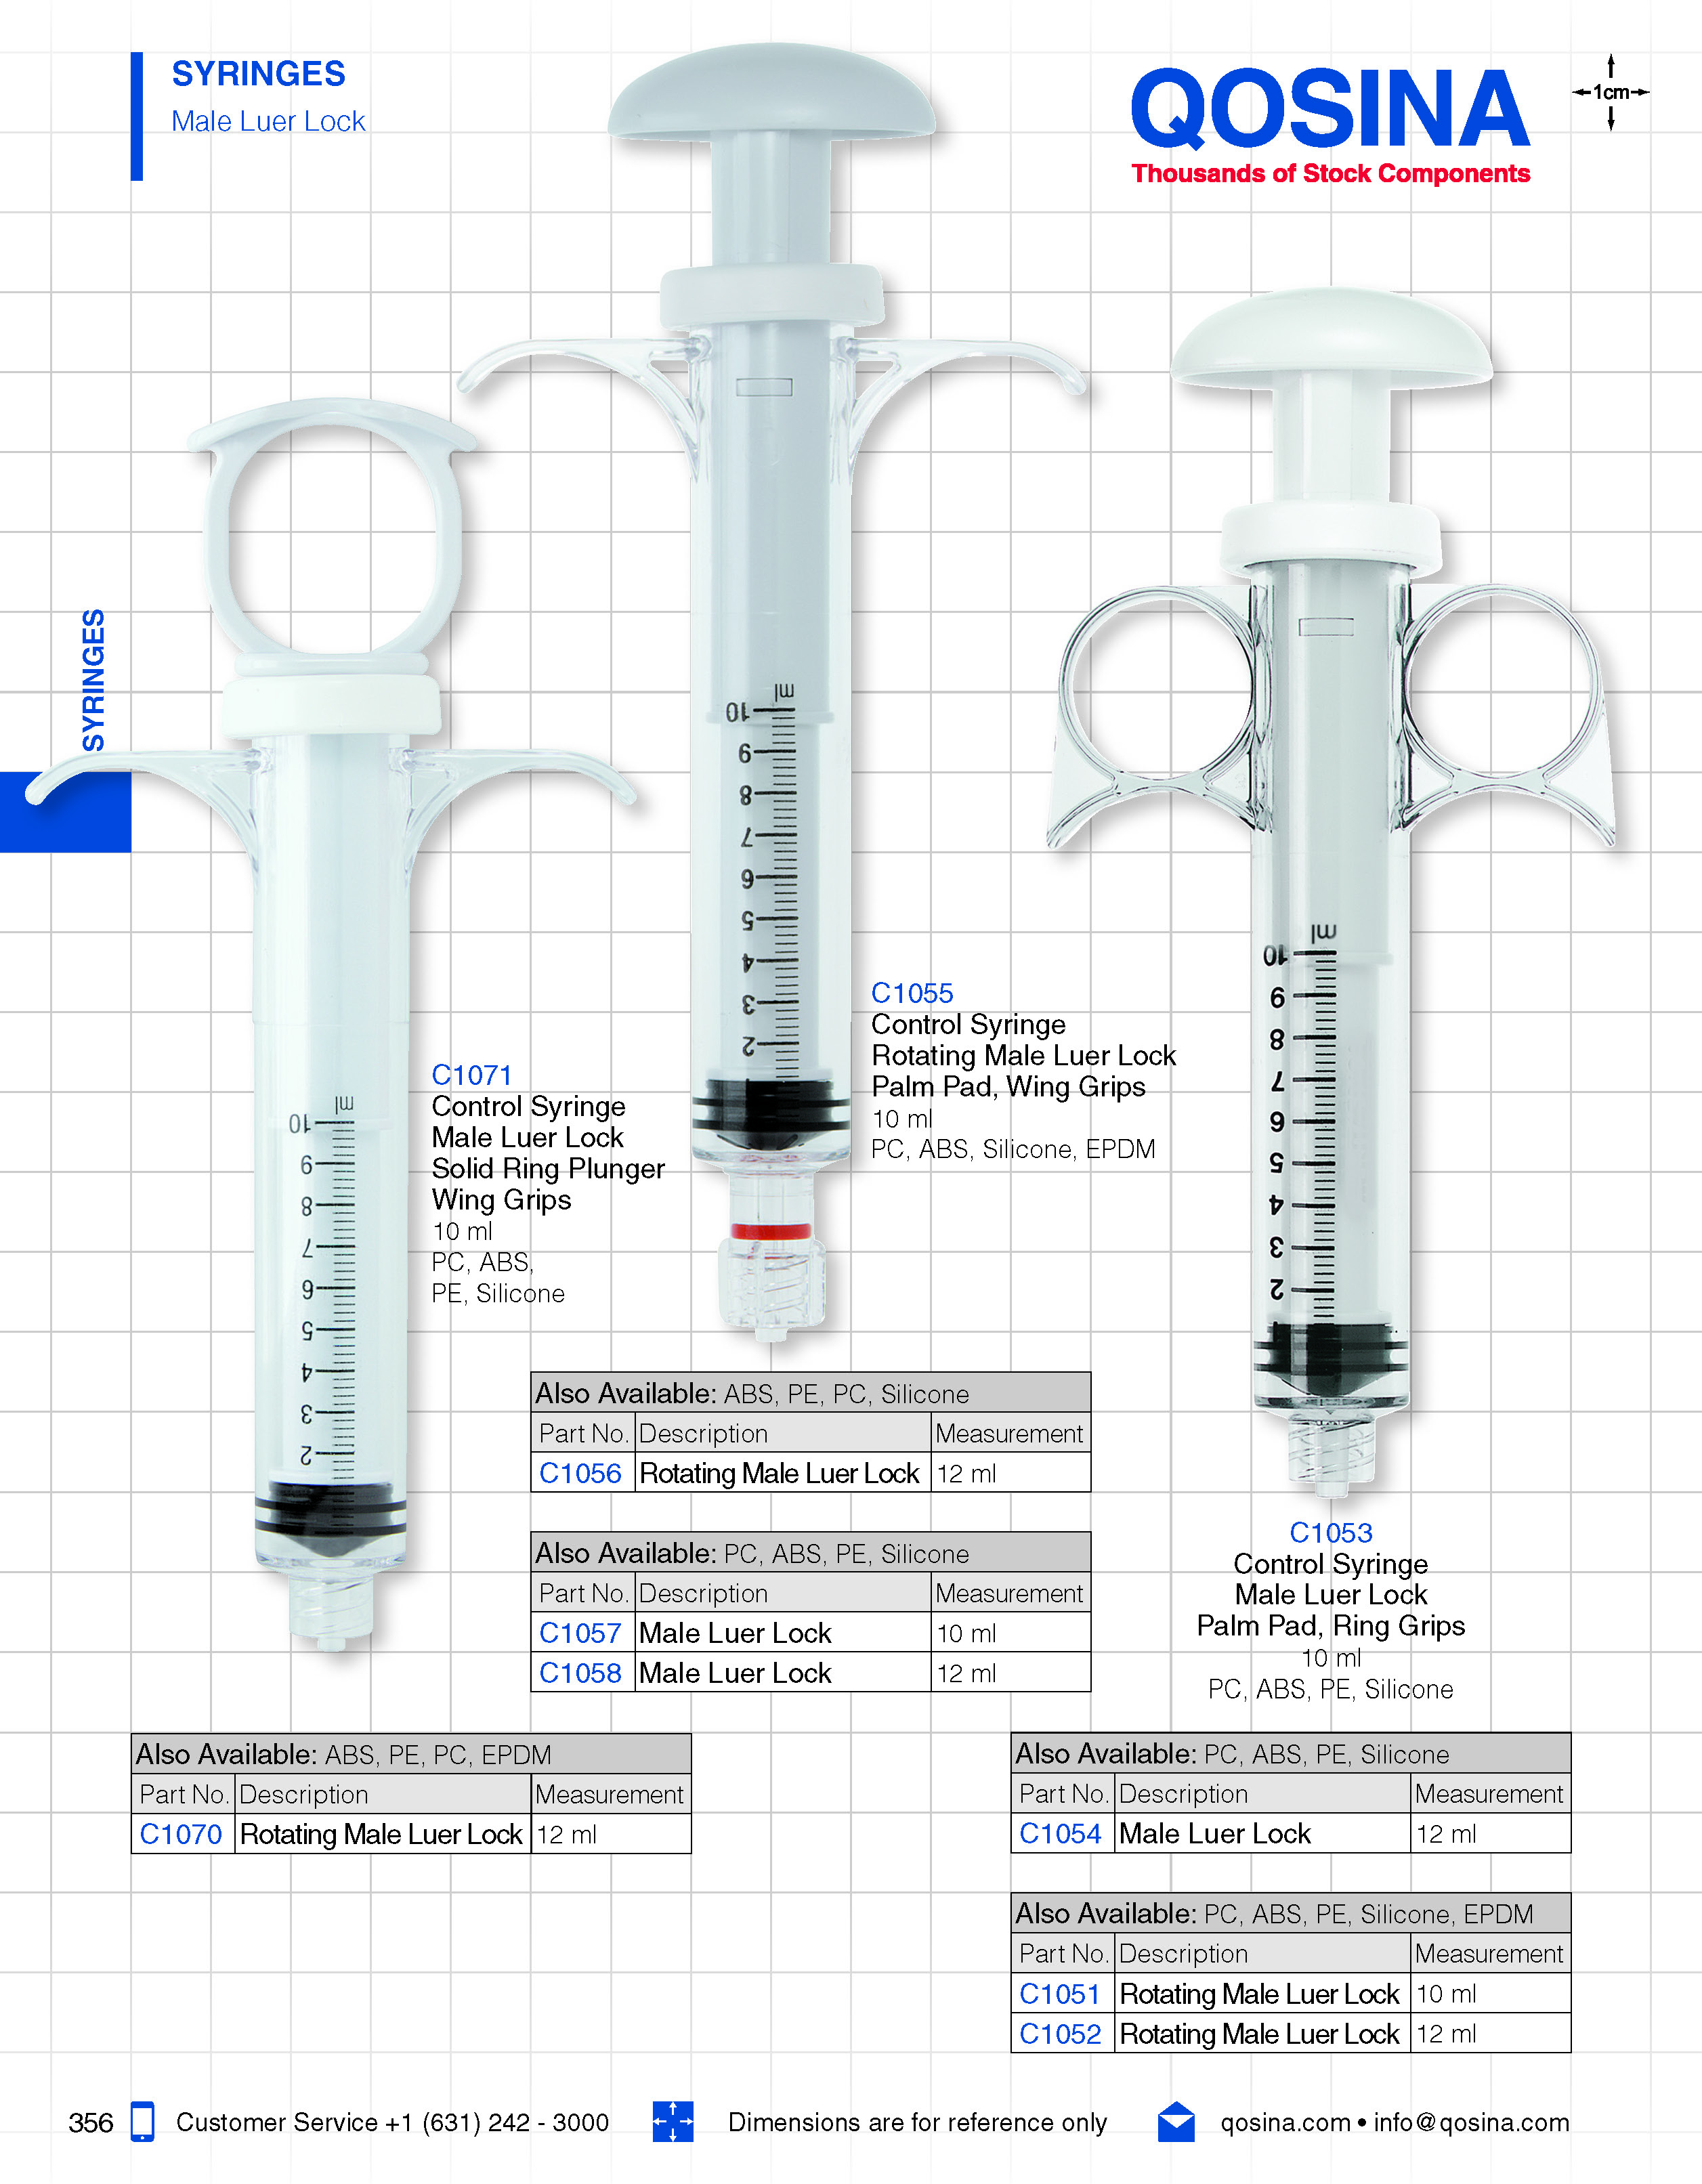 Control Syringe With Palm Pad Plunger And Wing Grip With